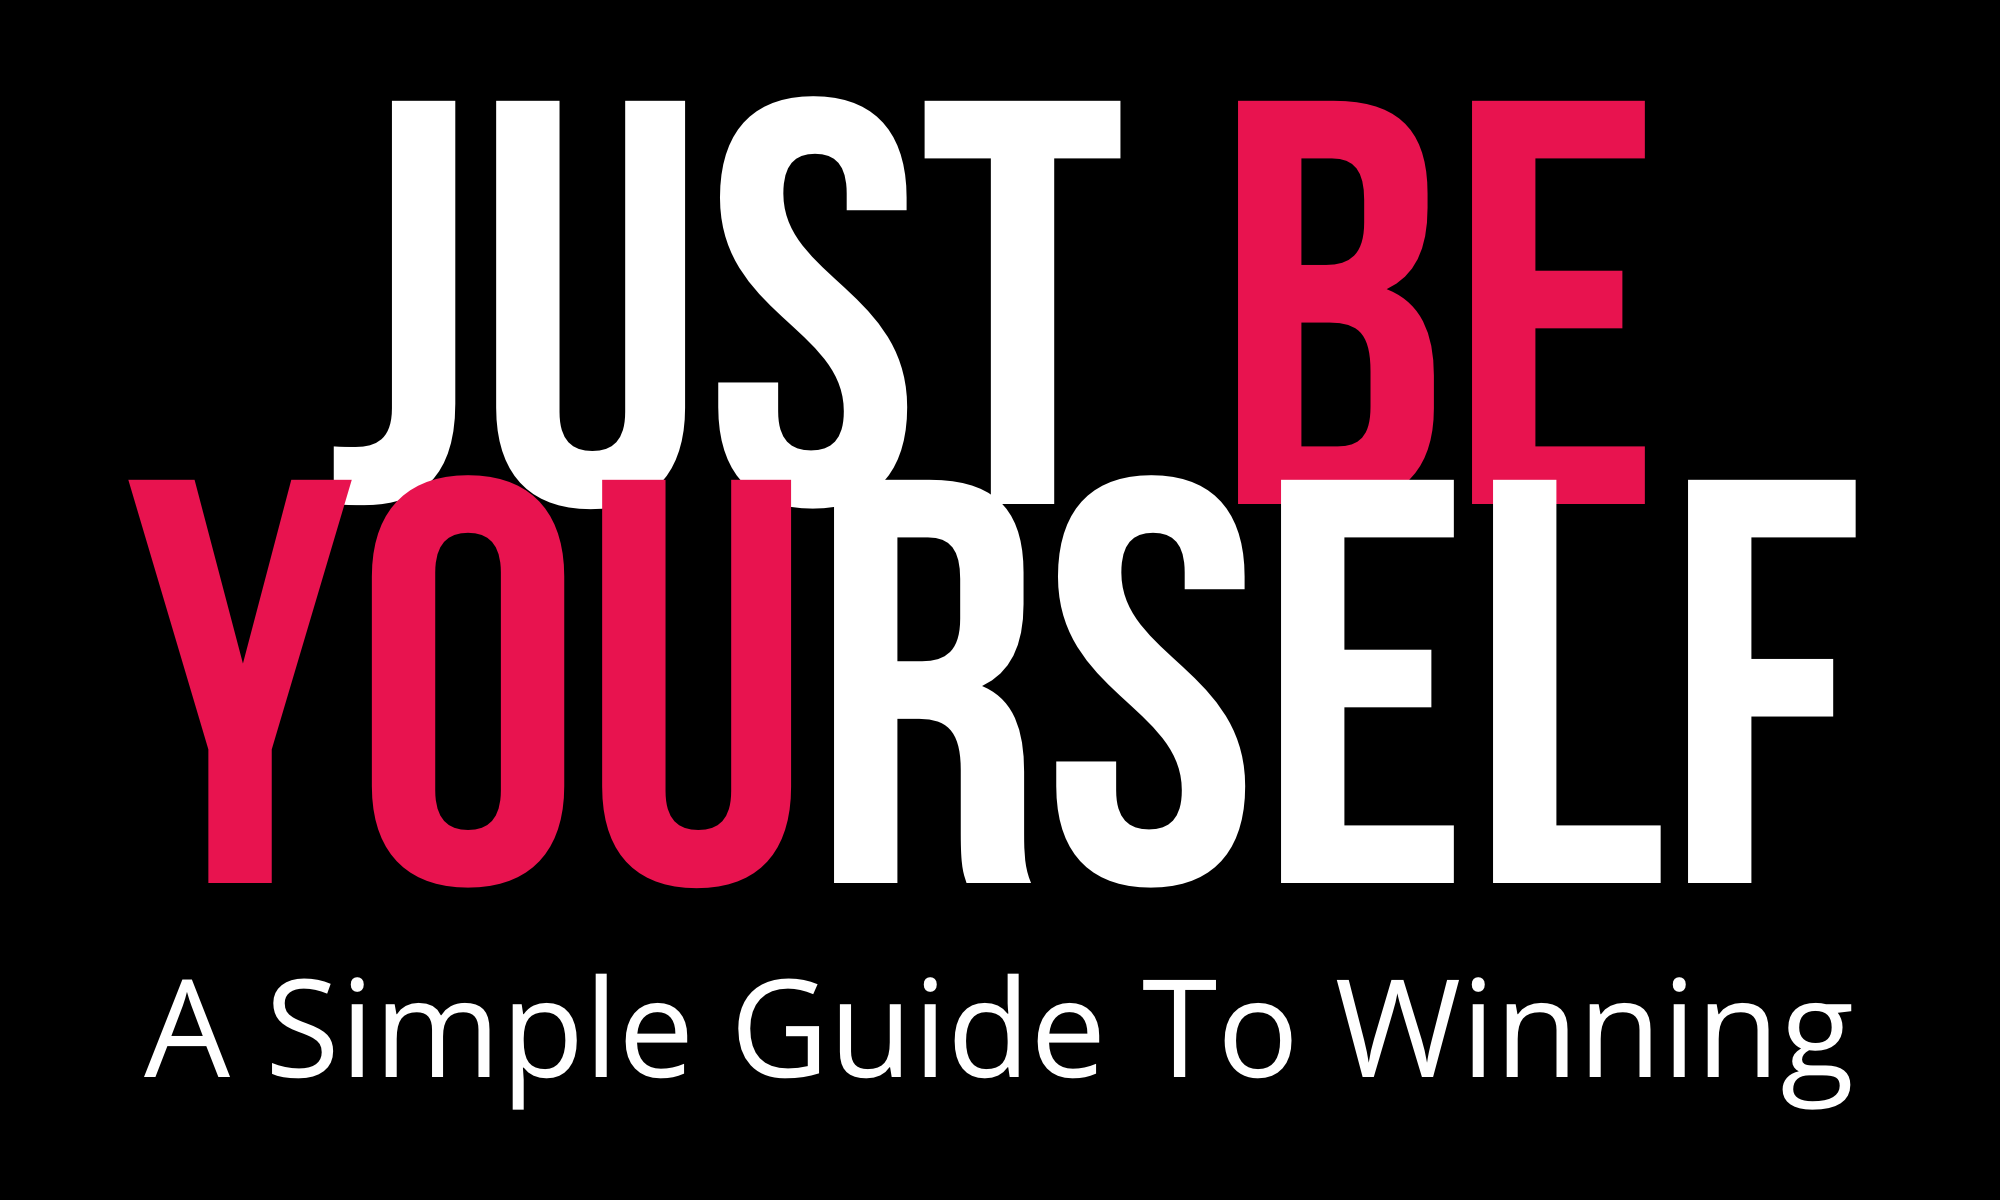 Just Be Yourself! A Simple Guide To Winning